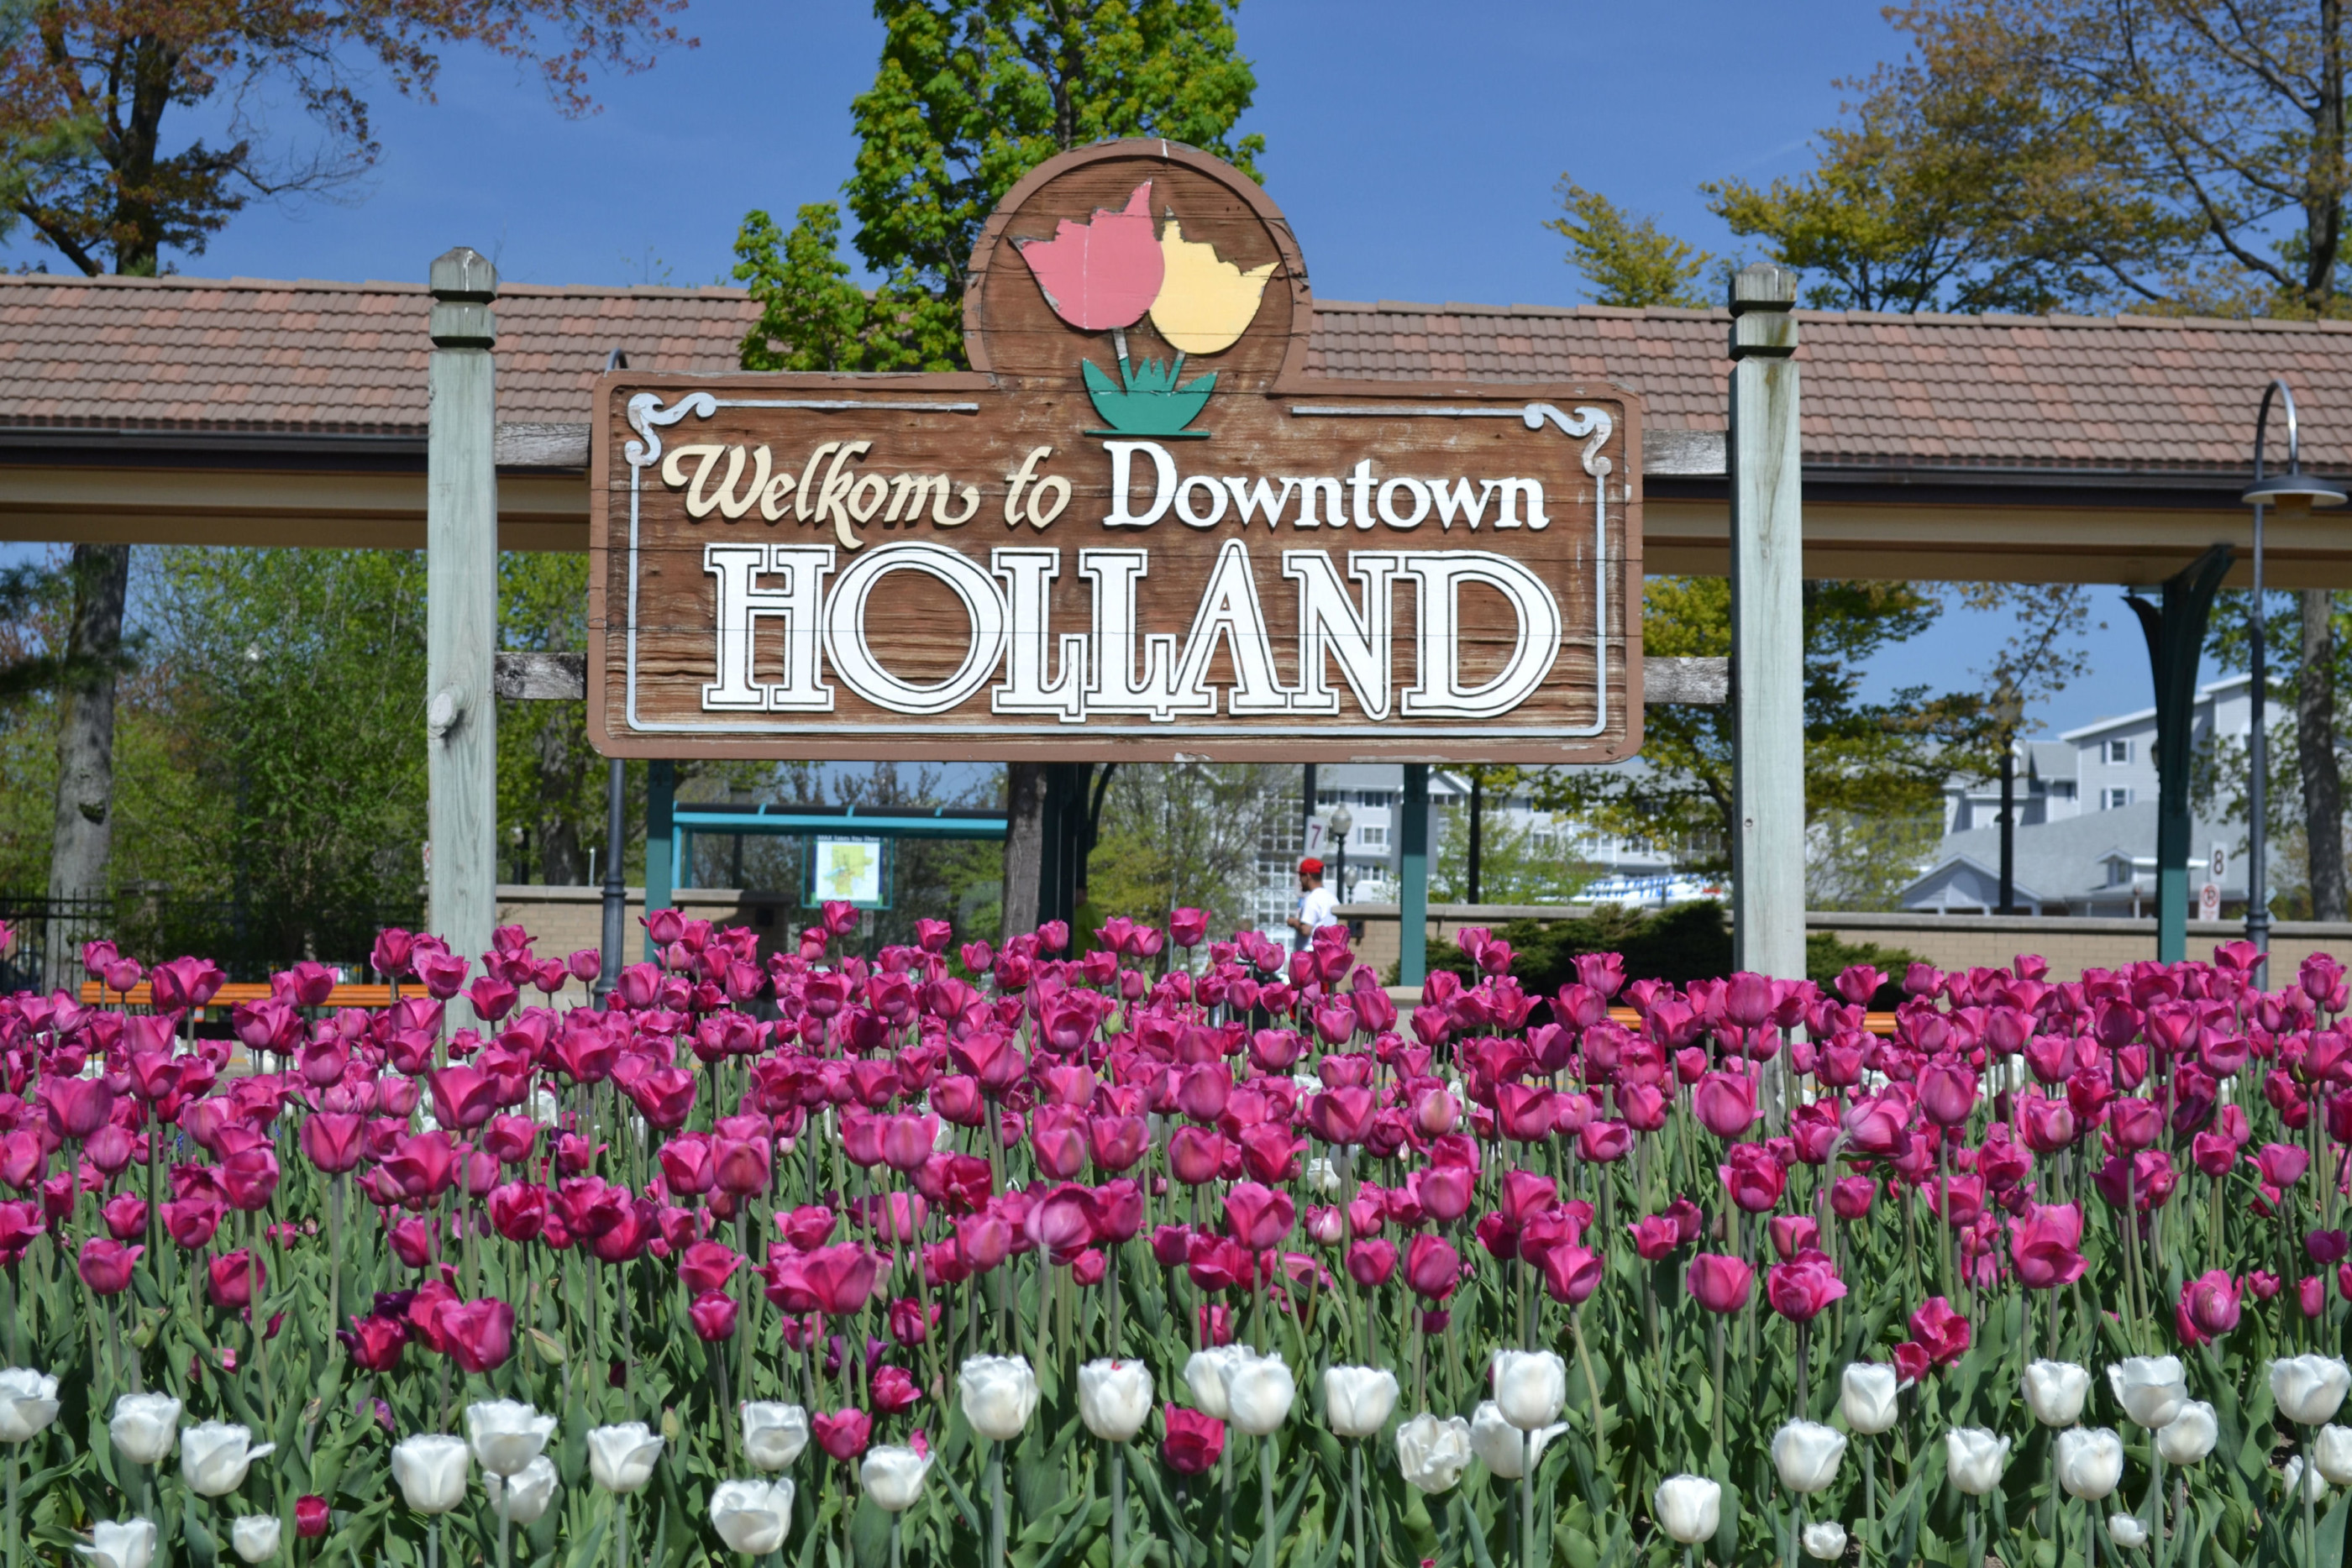 A patch of purple tulips in bloom in front of the Welkom to Holland sign